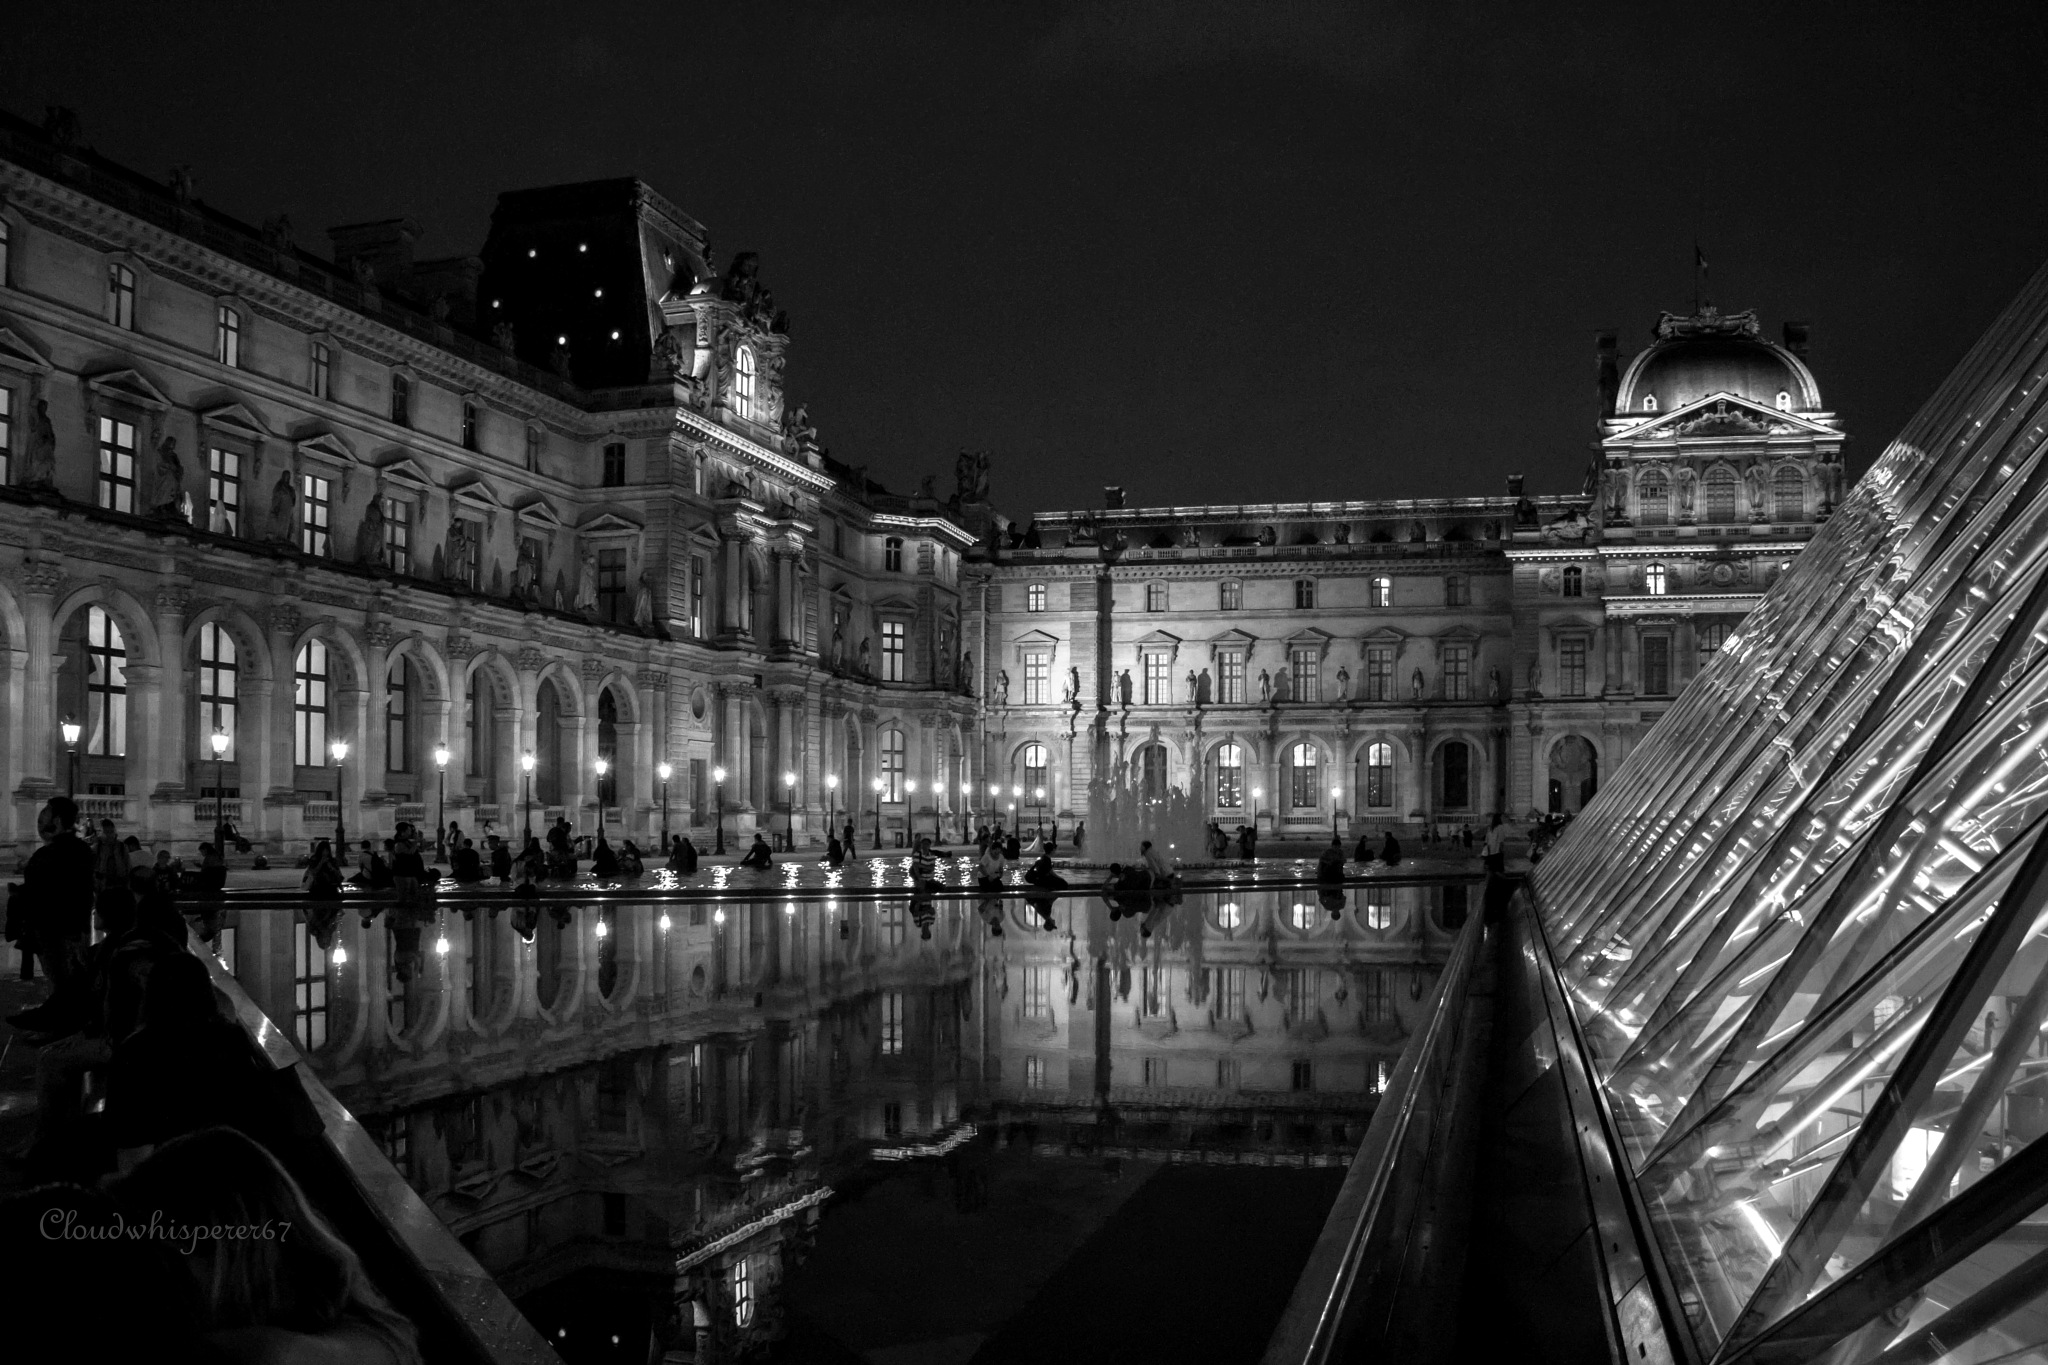 Le Louvre by Night (black & white) by cloudwhisperer67